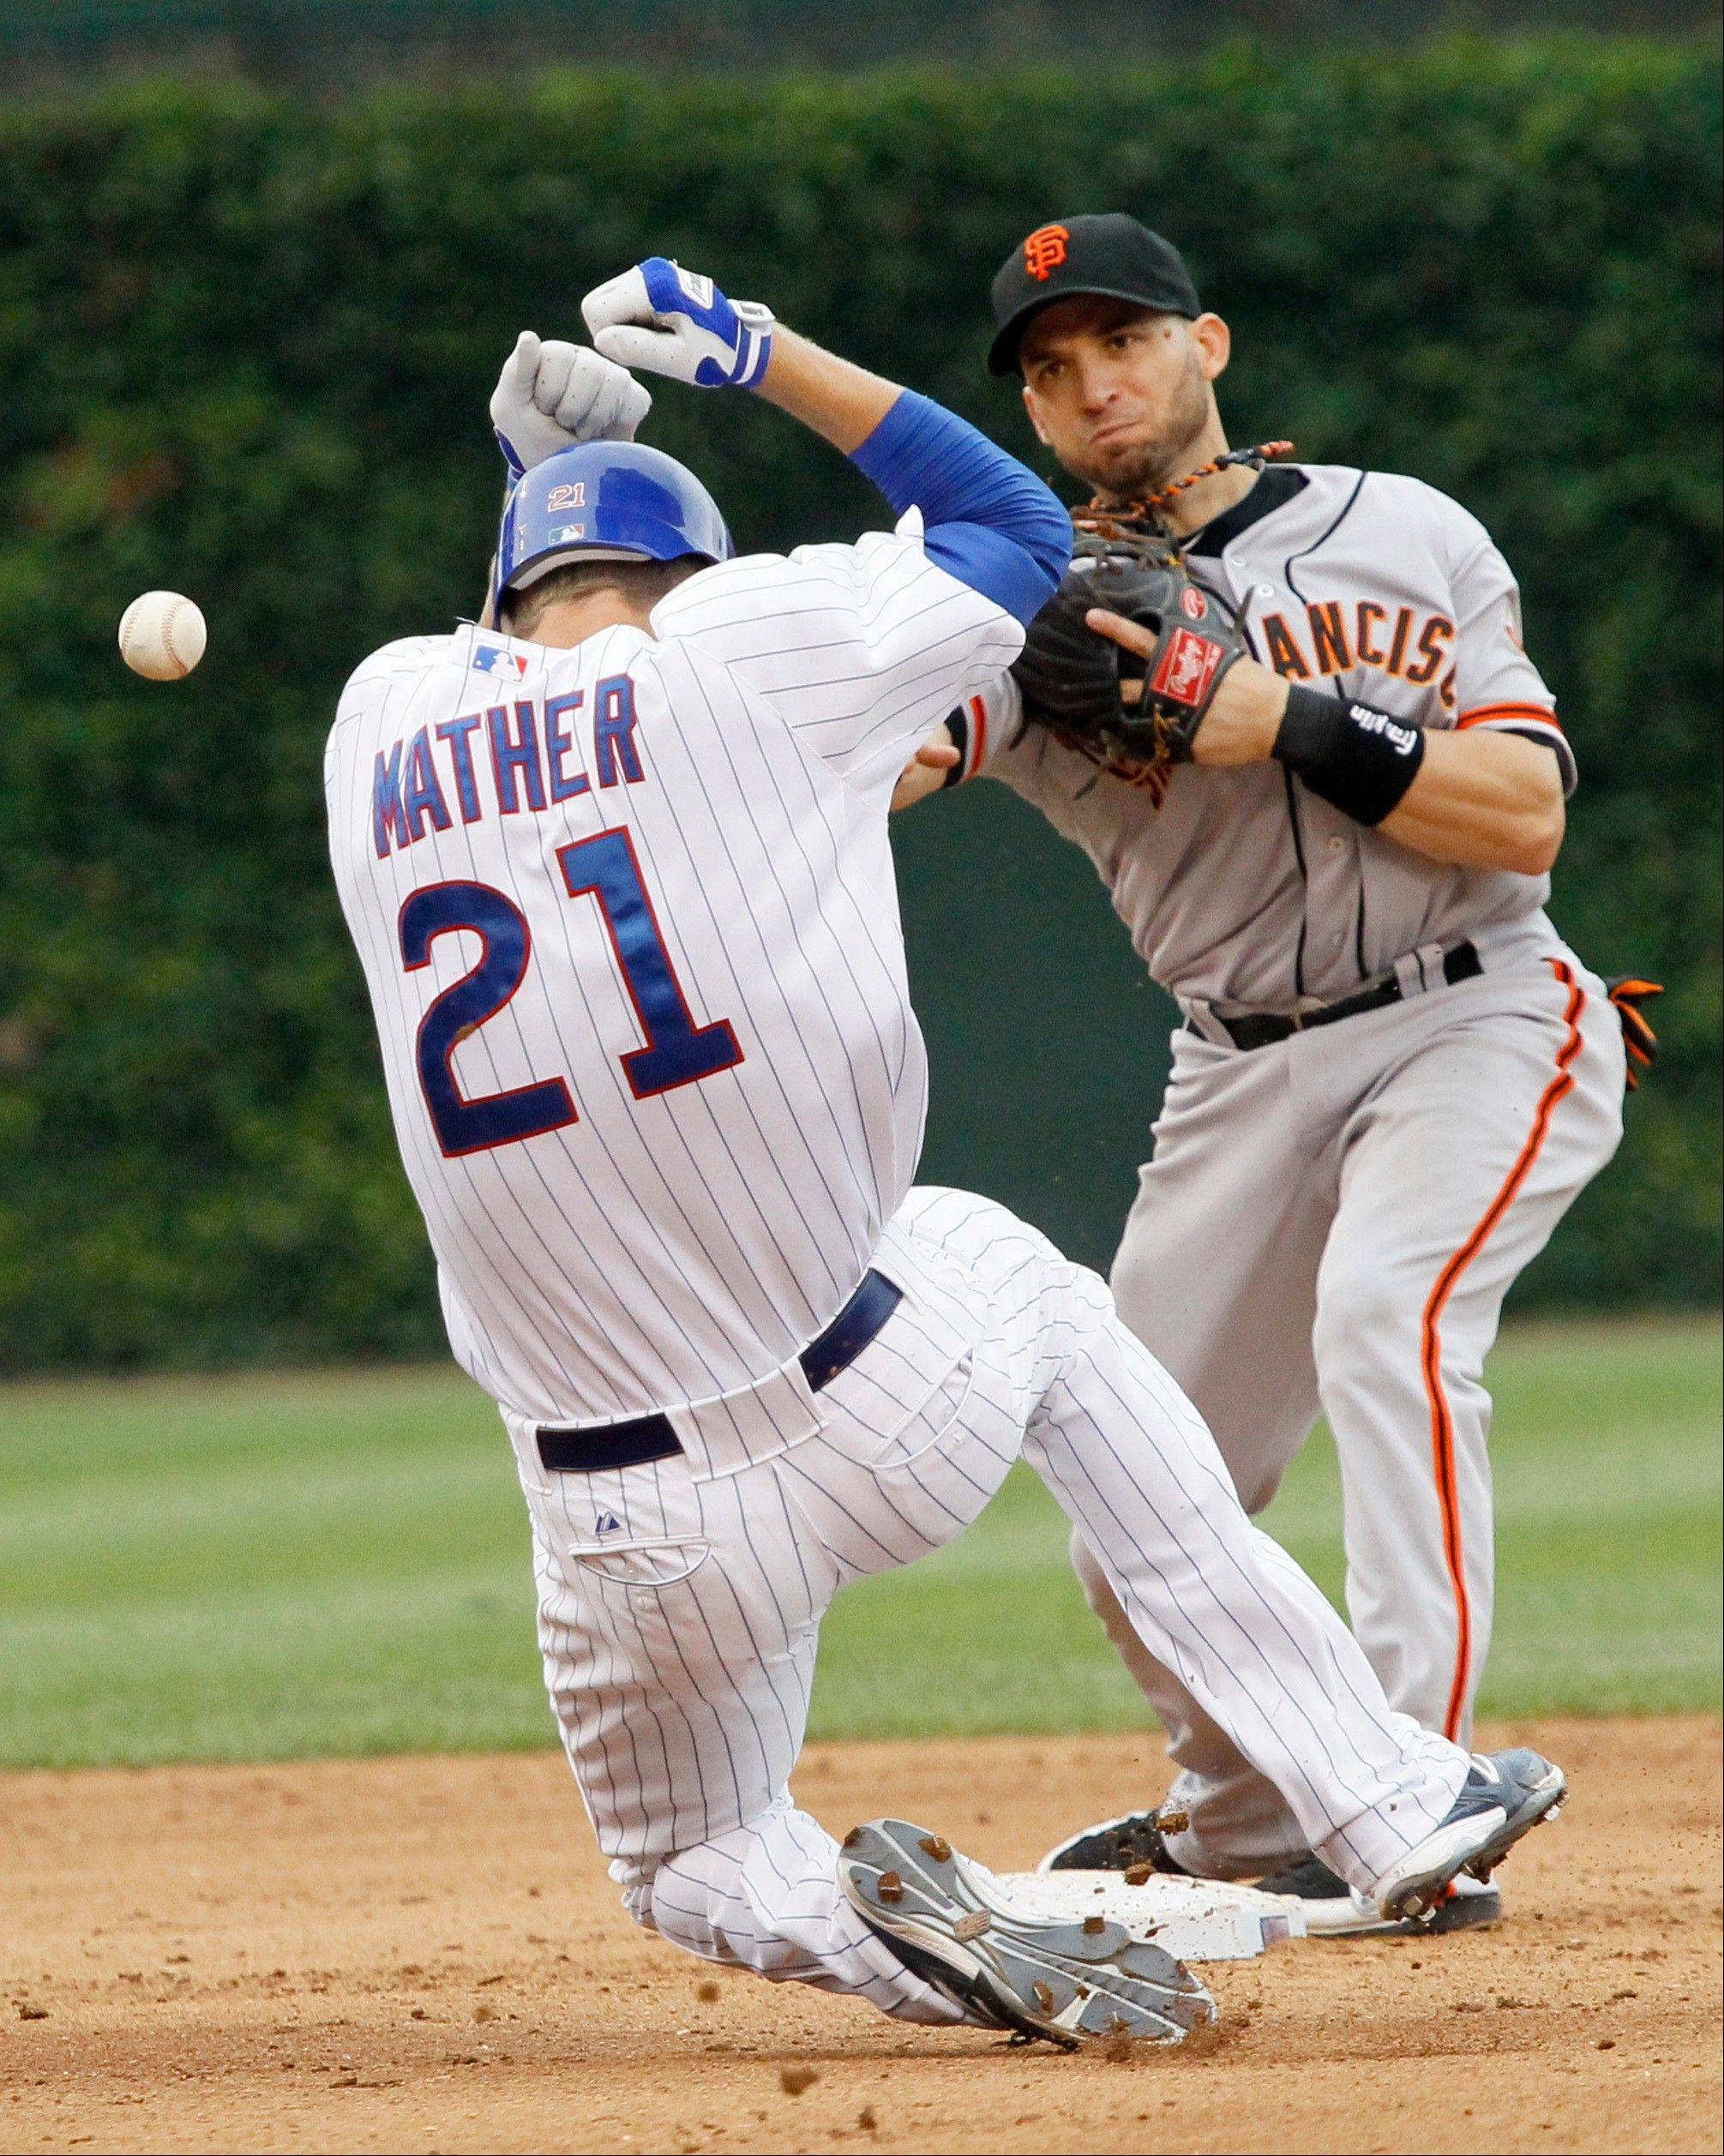 Chicago Cubs' Joe Mather ducks as San Francisco Giants second baseman Marco Scutaro turns the double play forcing Mather at second and getting Josh Vitters at first, during the eighth inning of a baseball game Saturday in Chicago.